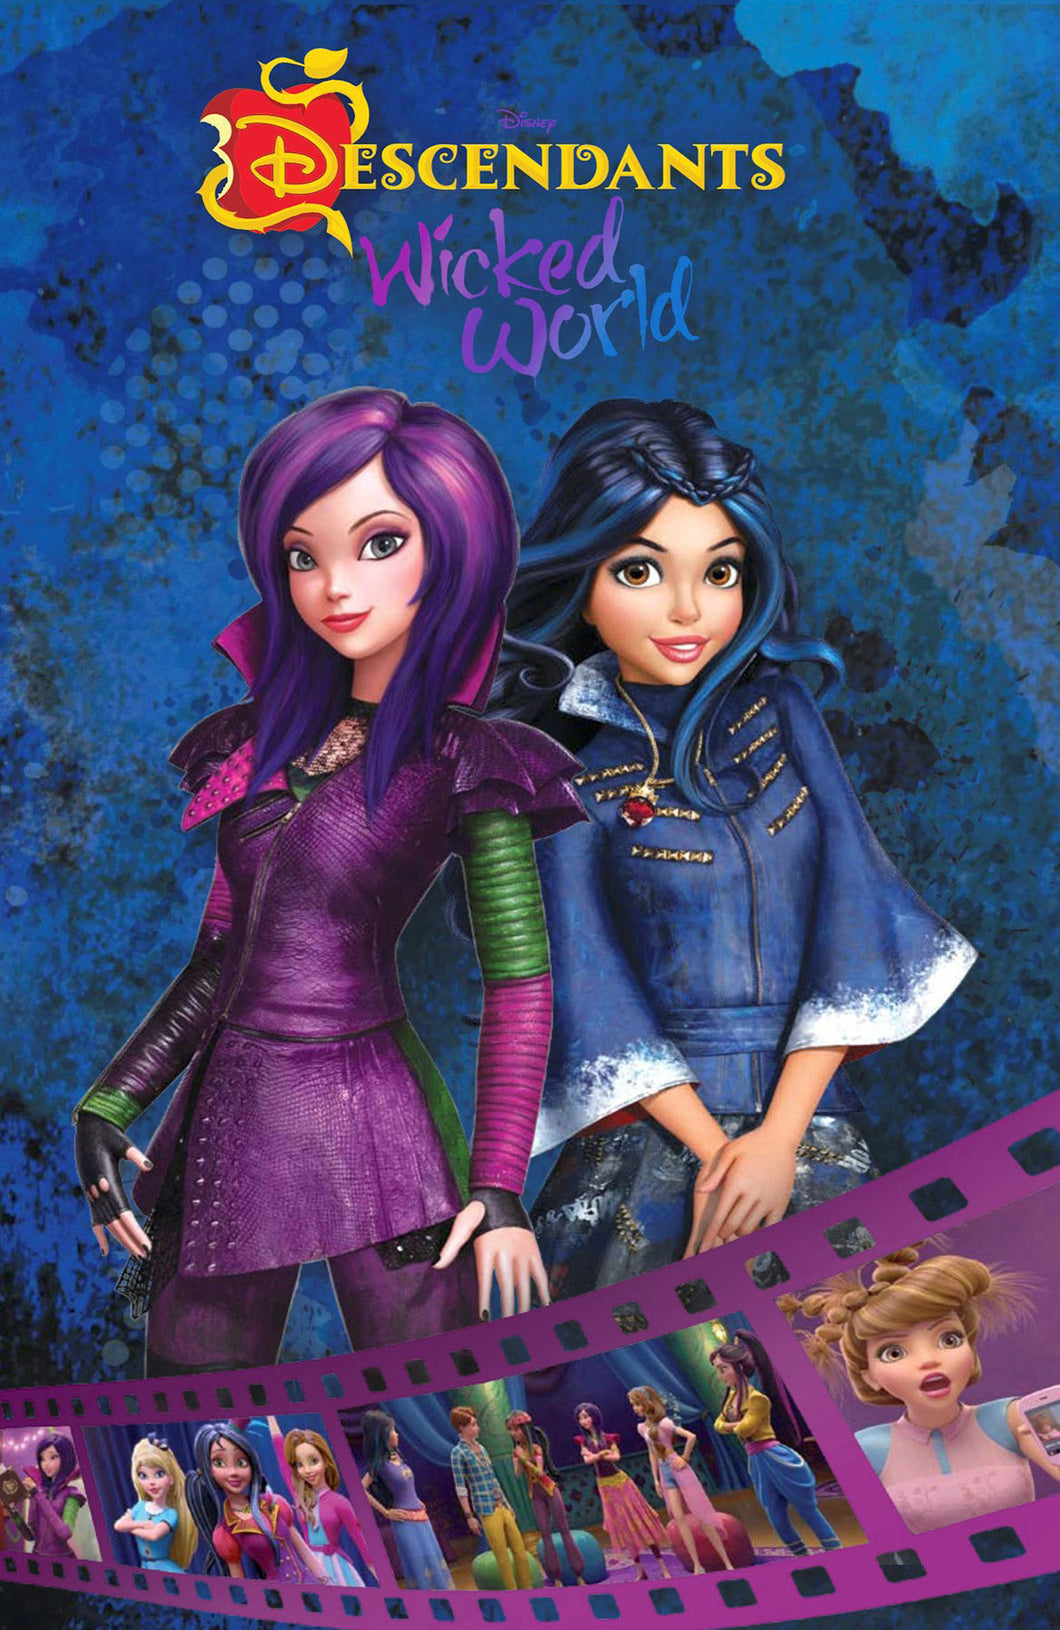 Disney Descendants: Wicked World Cinestory Comic Vol. 1